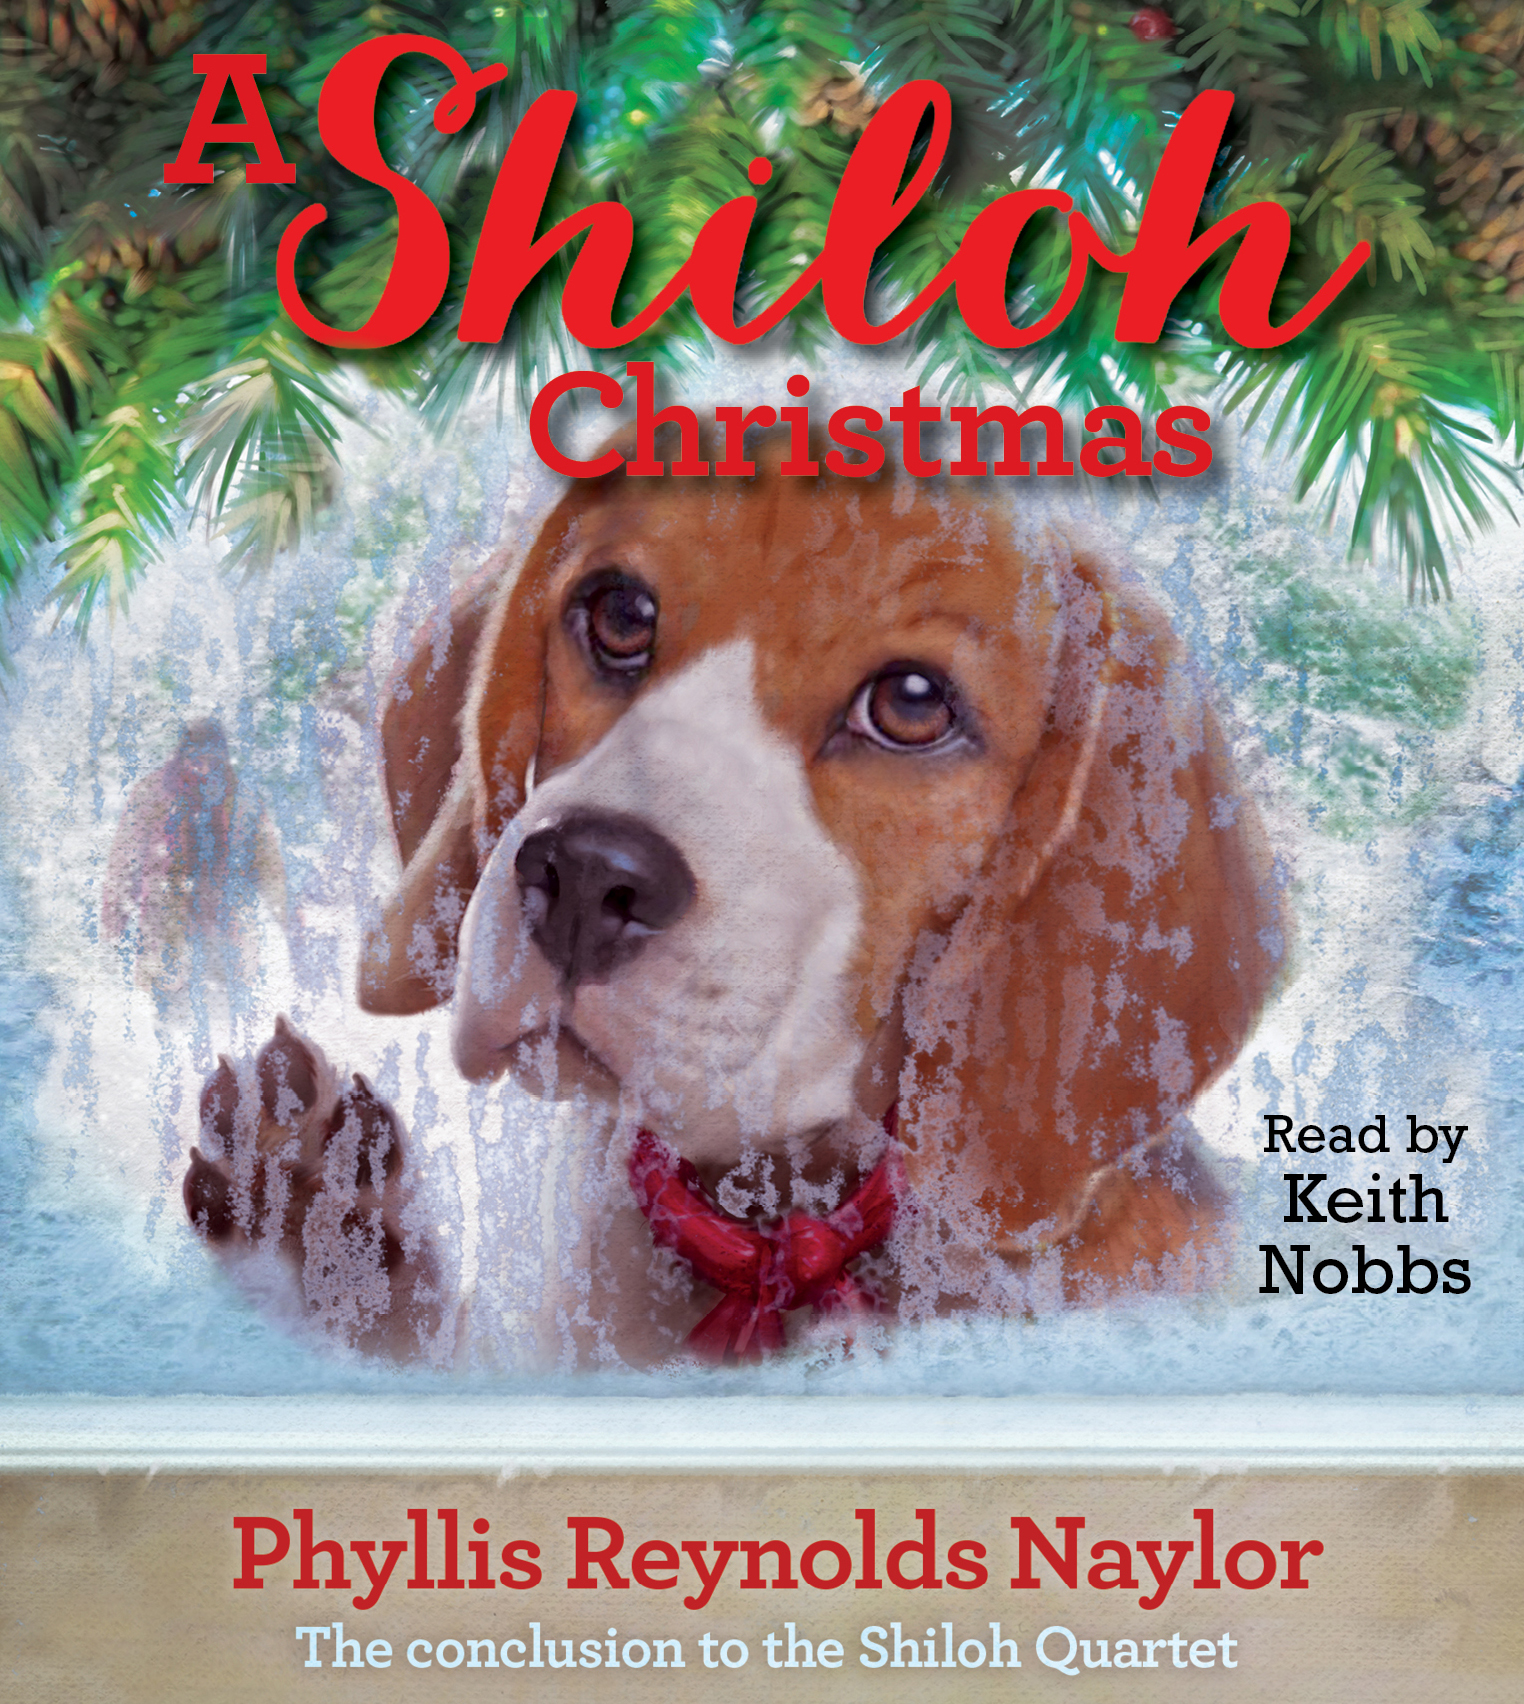 A shiloh christmas 9781442391383 hr